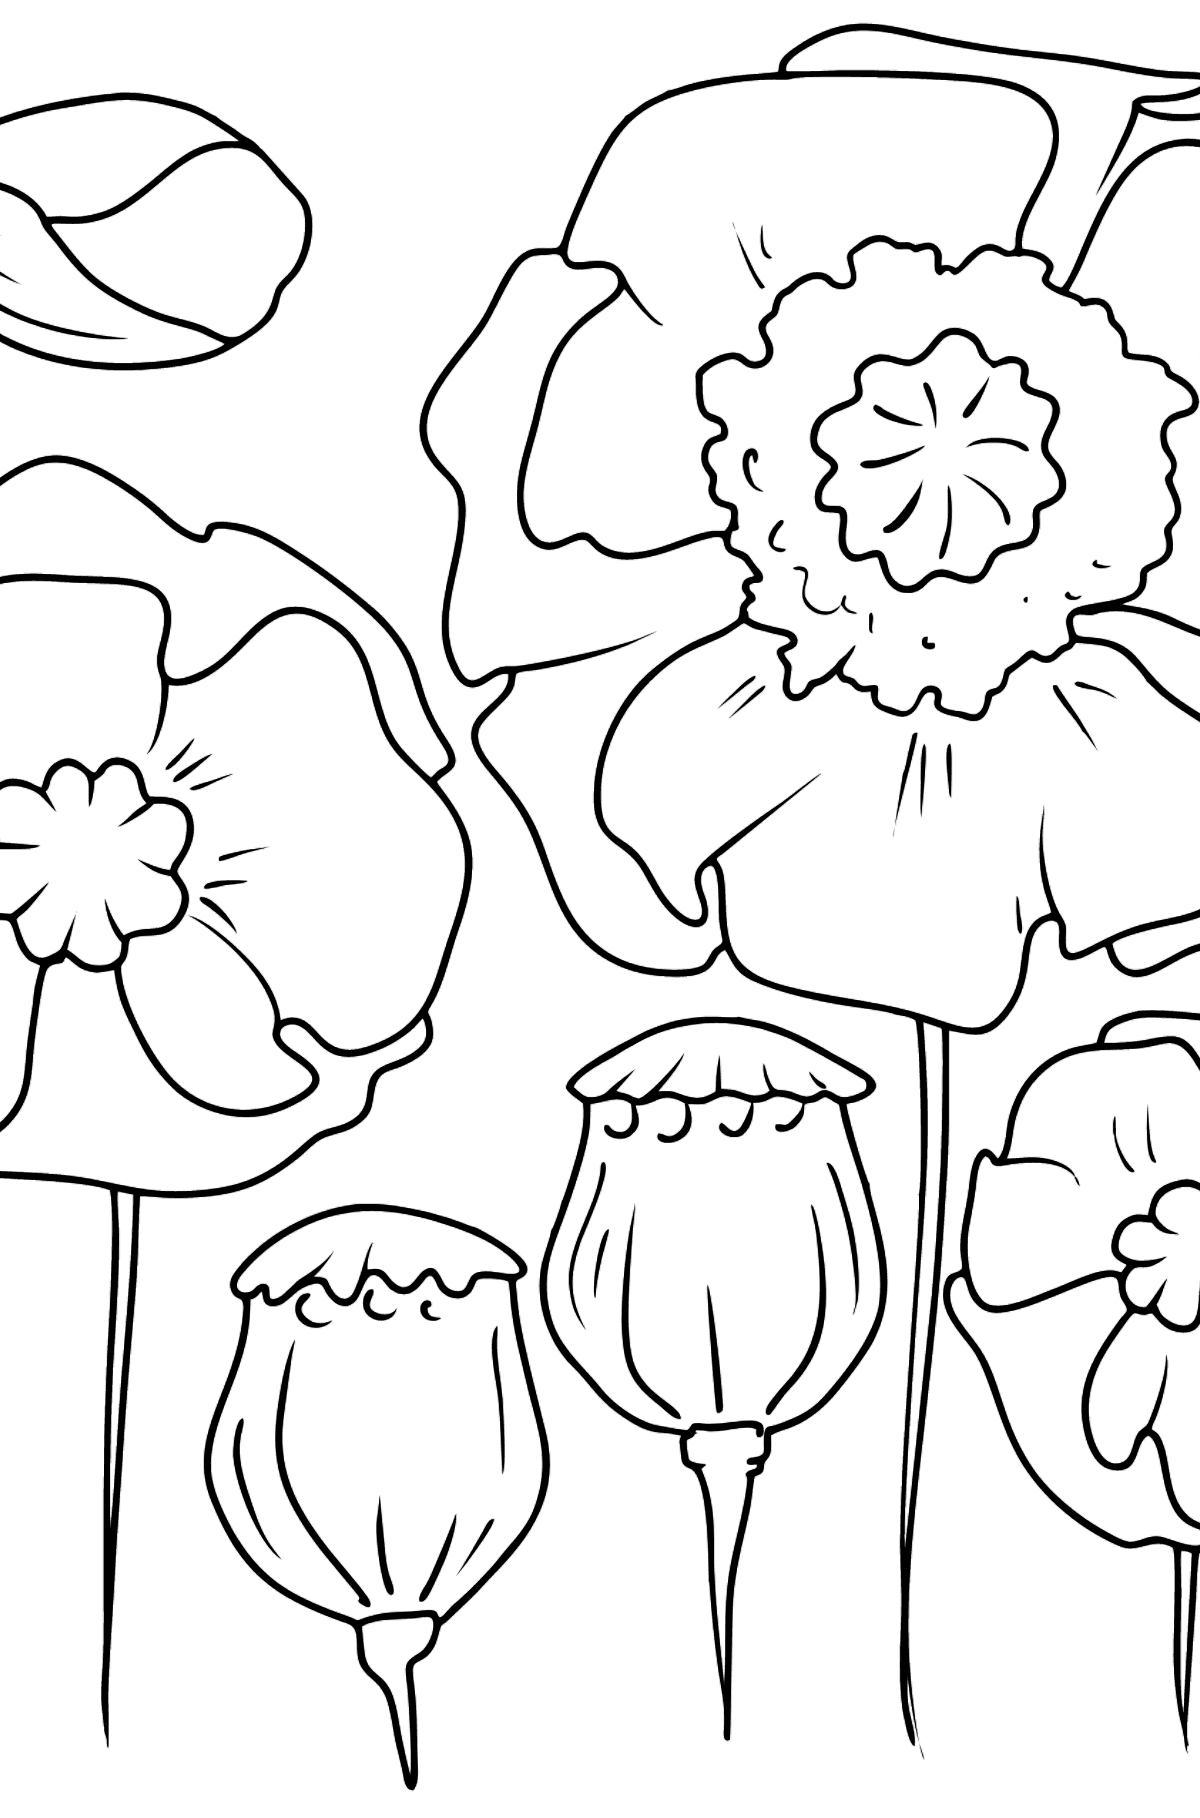 Flower Coloring Page - Poppies - Coloring Pages for Kids